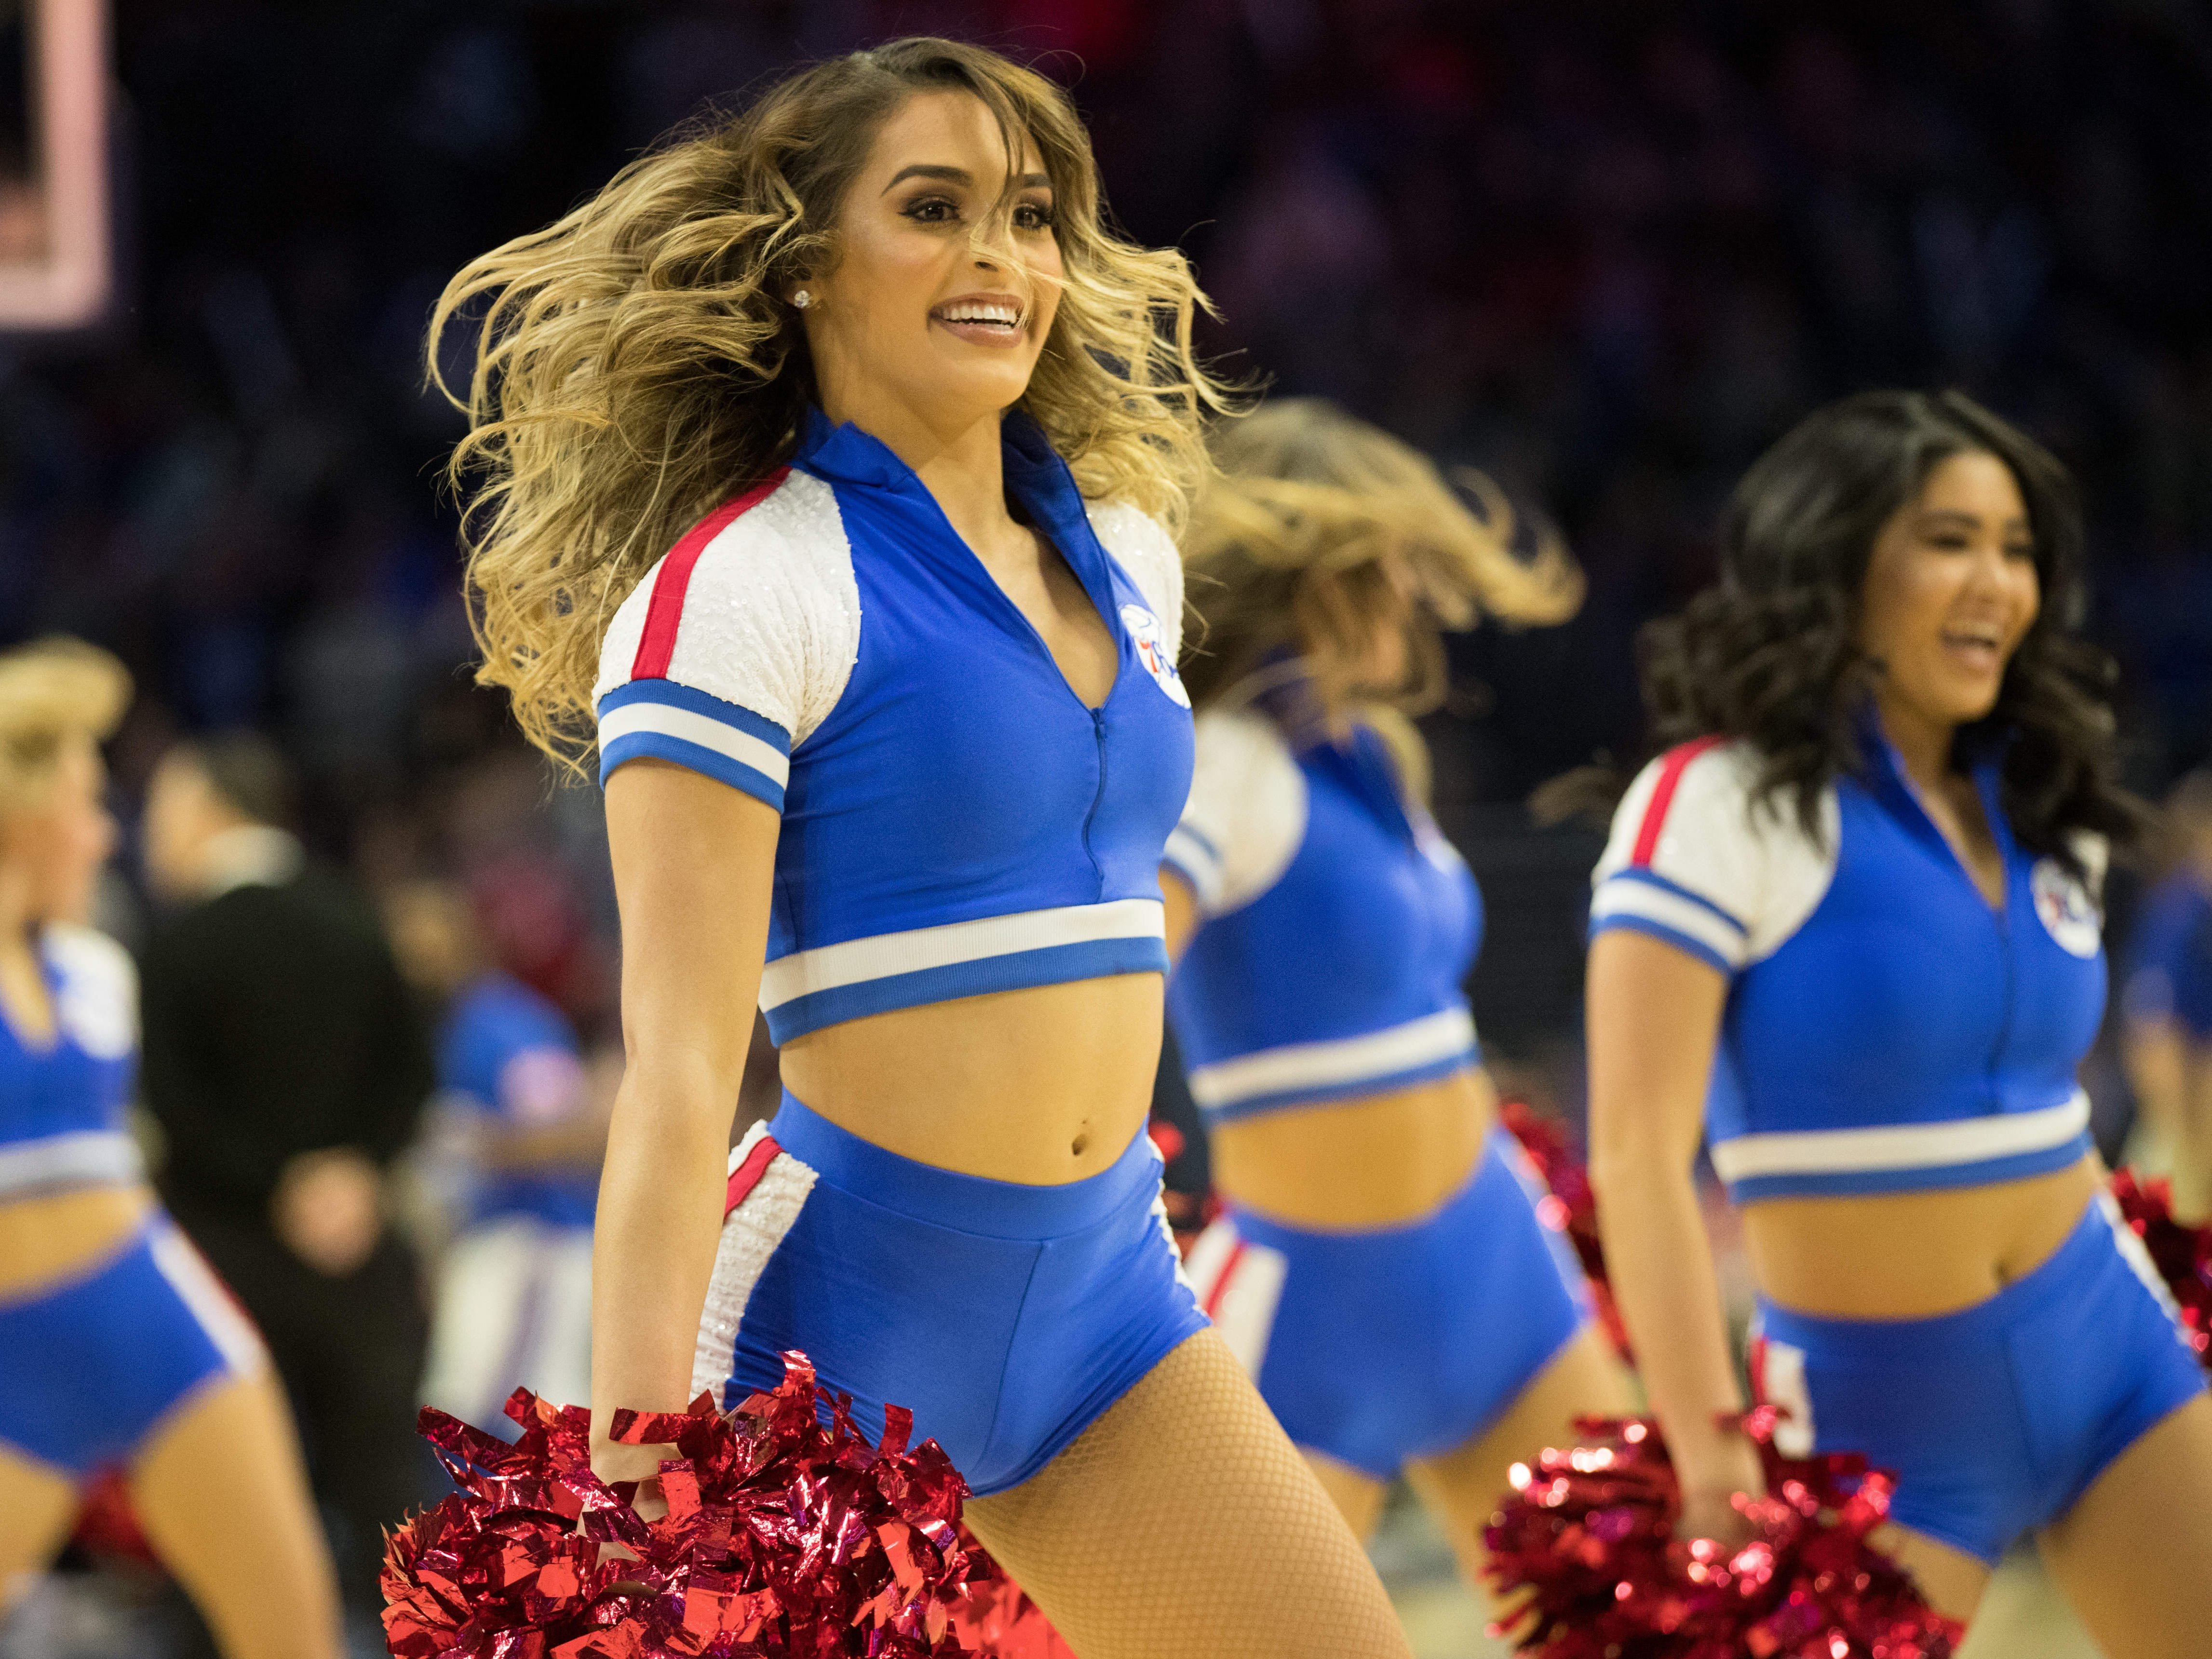 Dec. 10: 76ers dancers perform during the fourth quarter of a game against the Pistons.